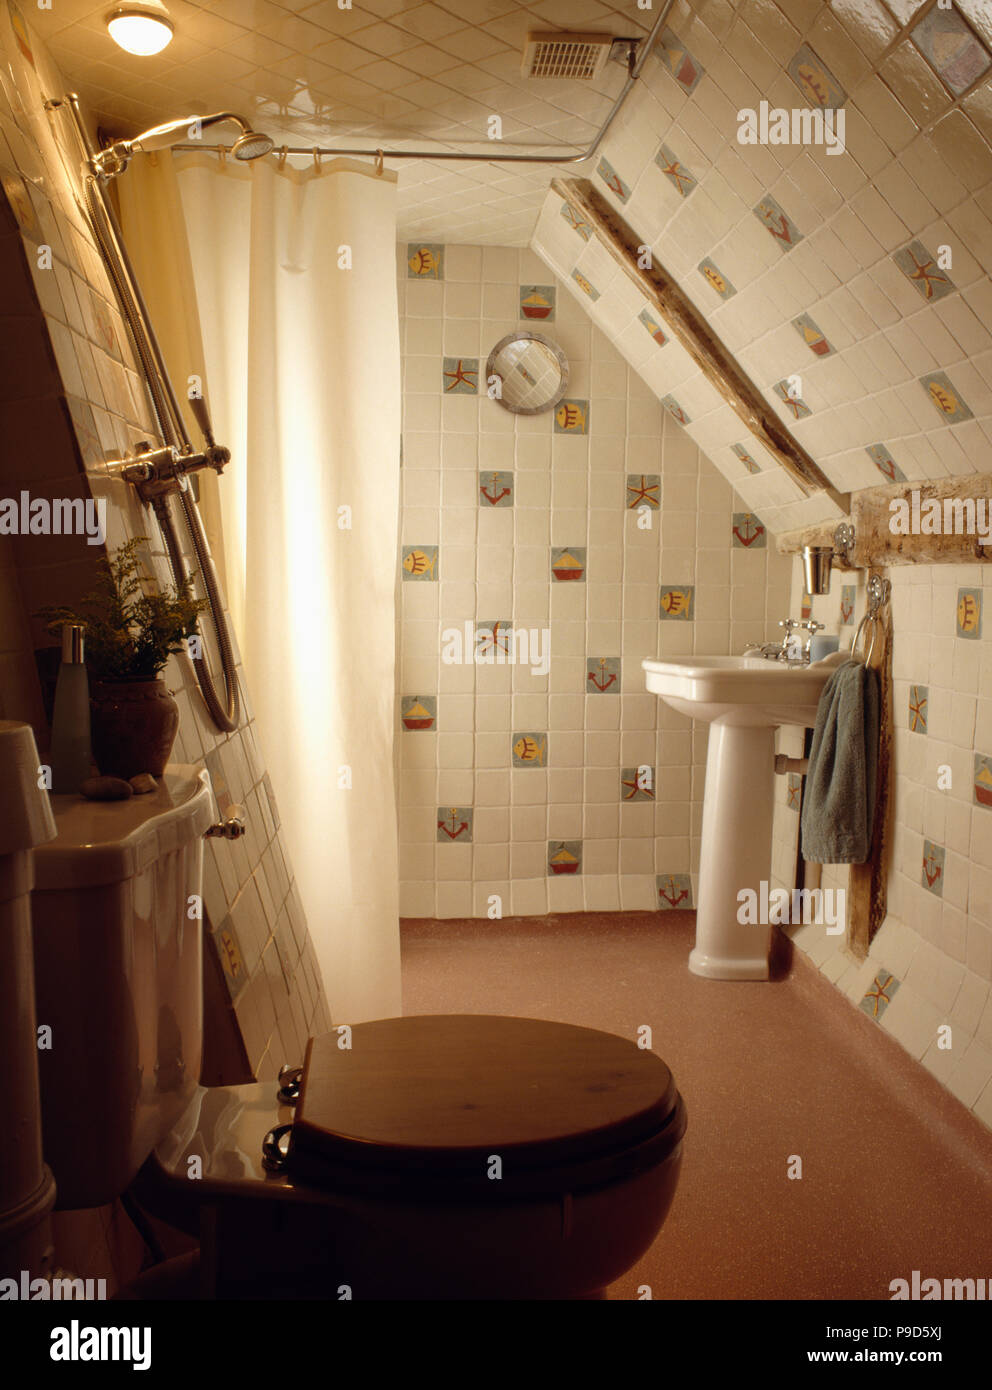 Wooden seat on toilet in tiled attic shower room Stock Photo ...